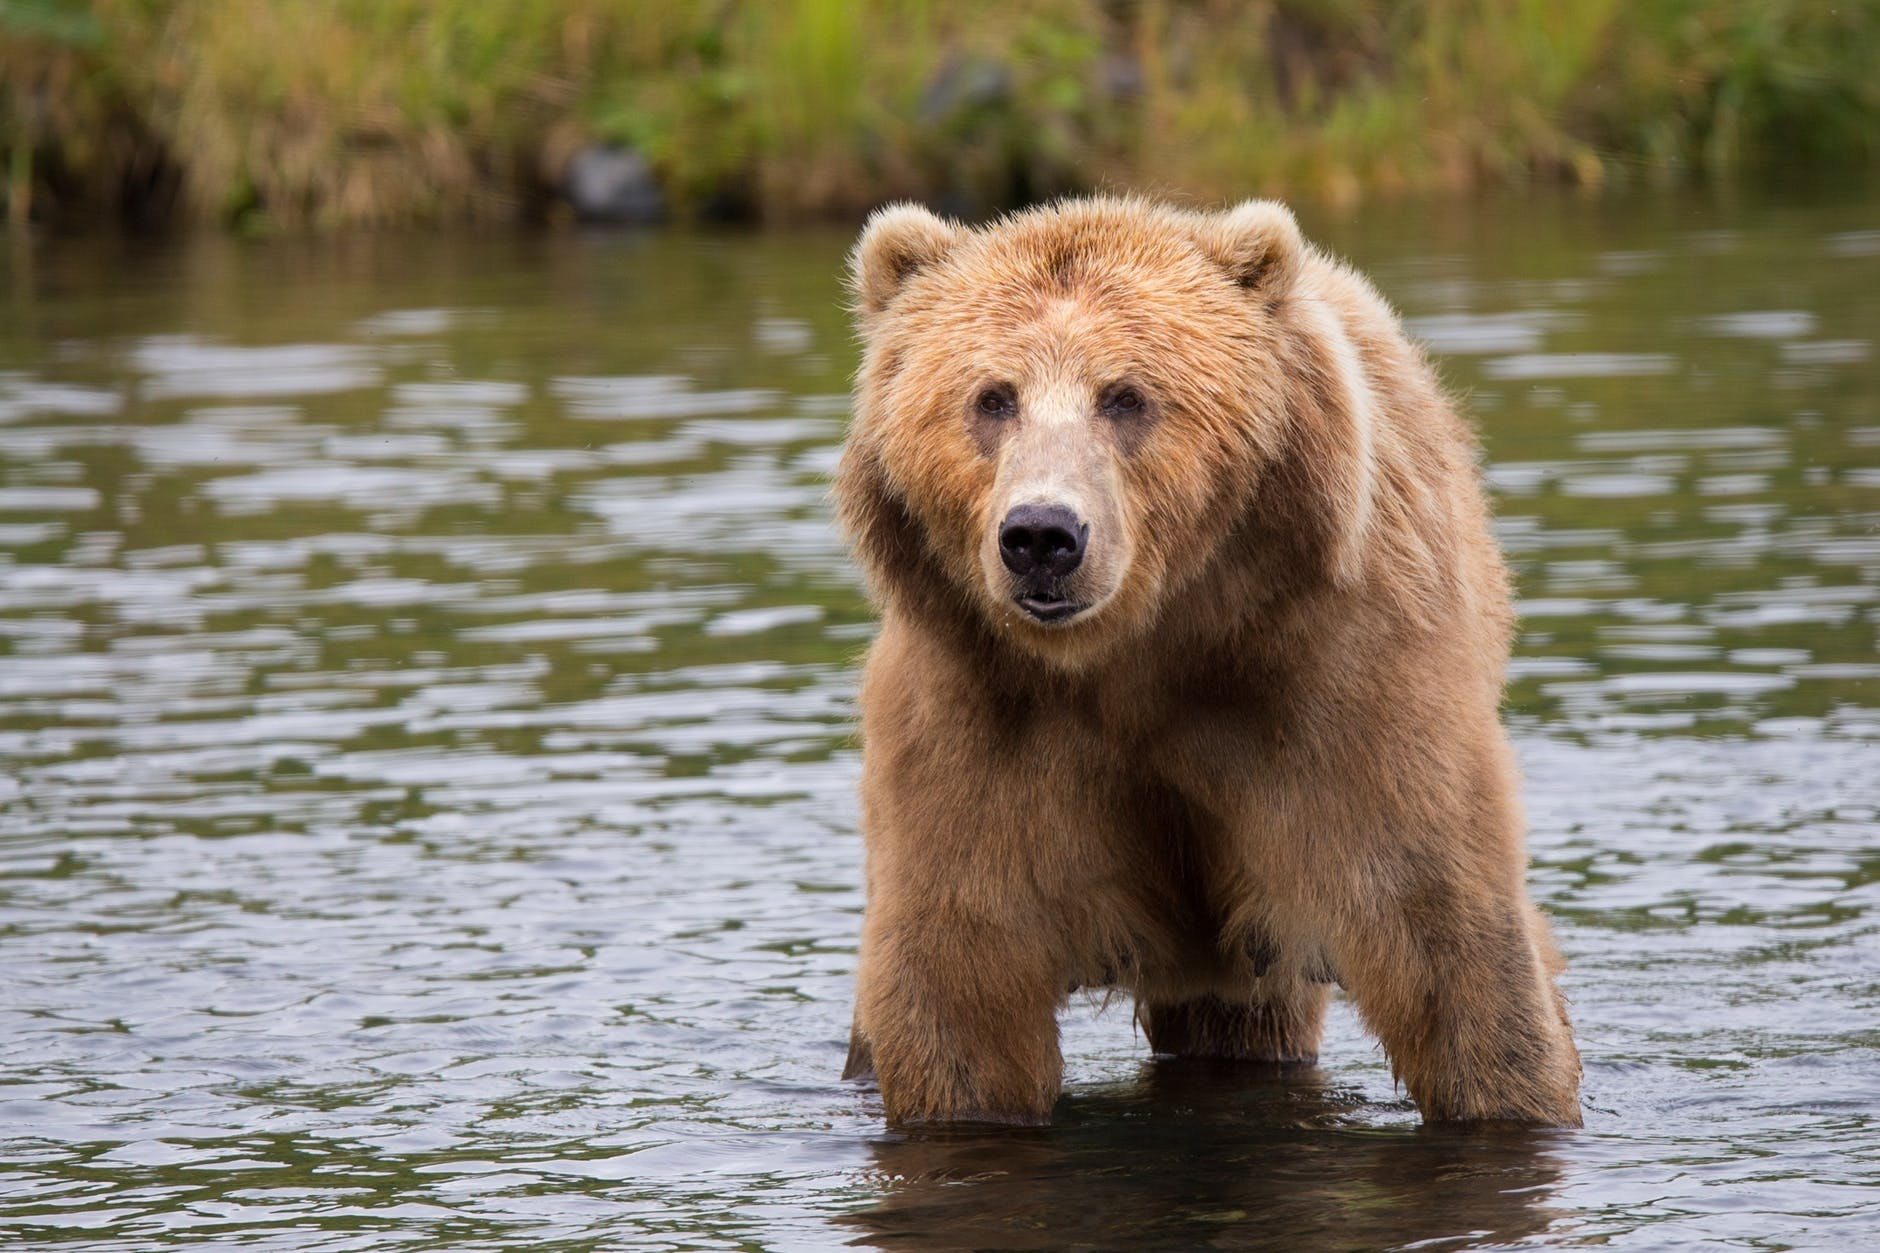 brown bear in body of water during daytime